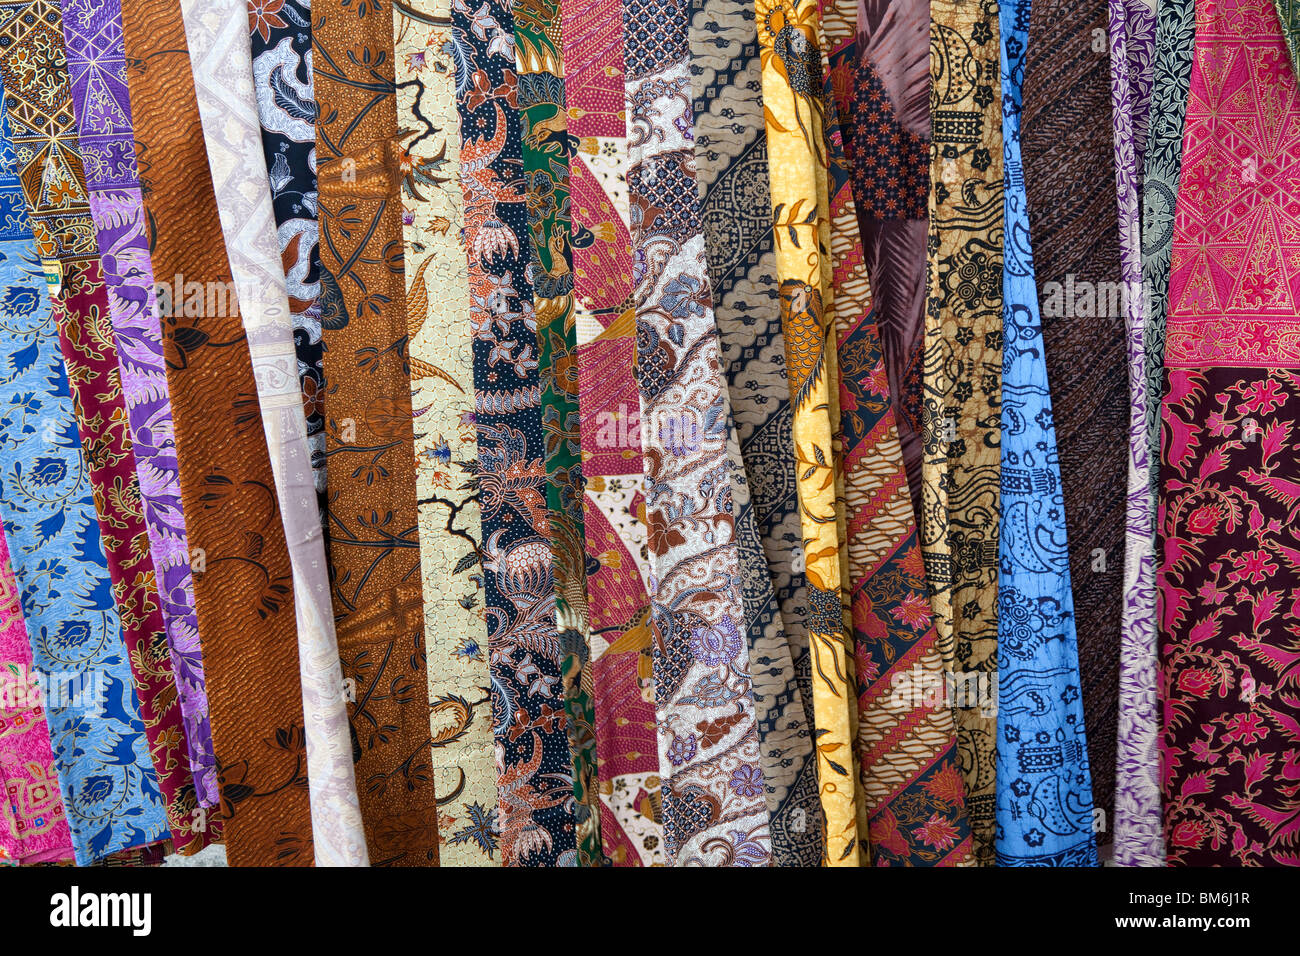 Sarongs with classic pattern at Bali Indonesia - Stock Image